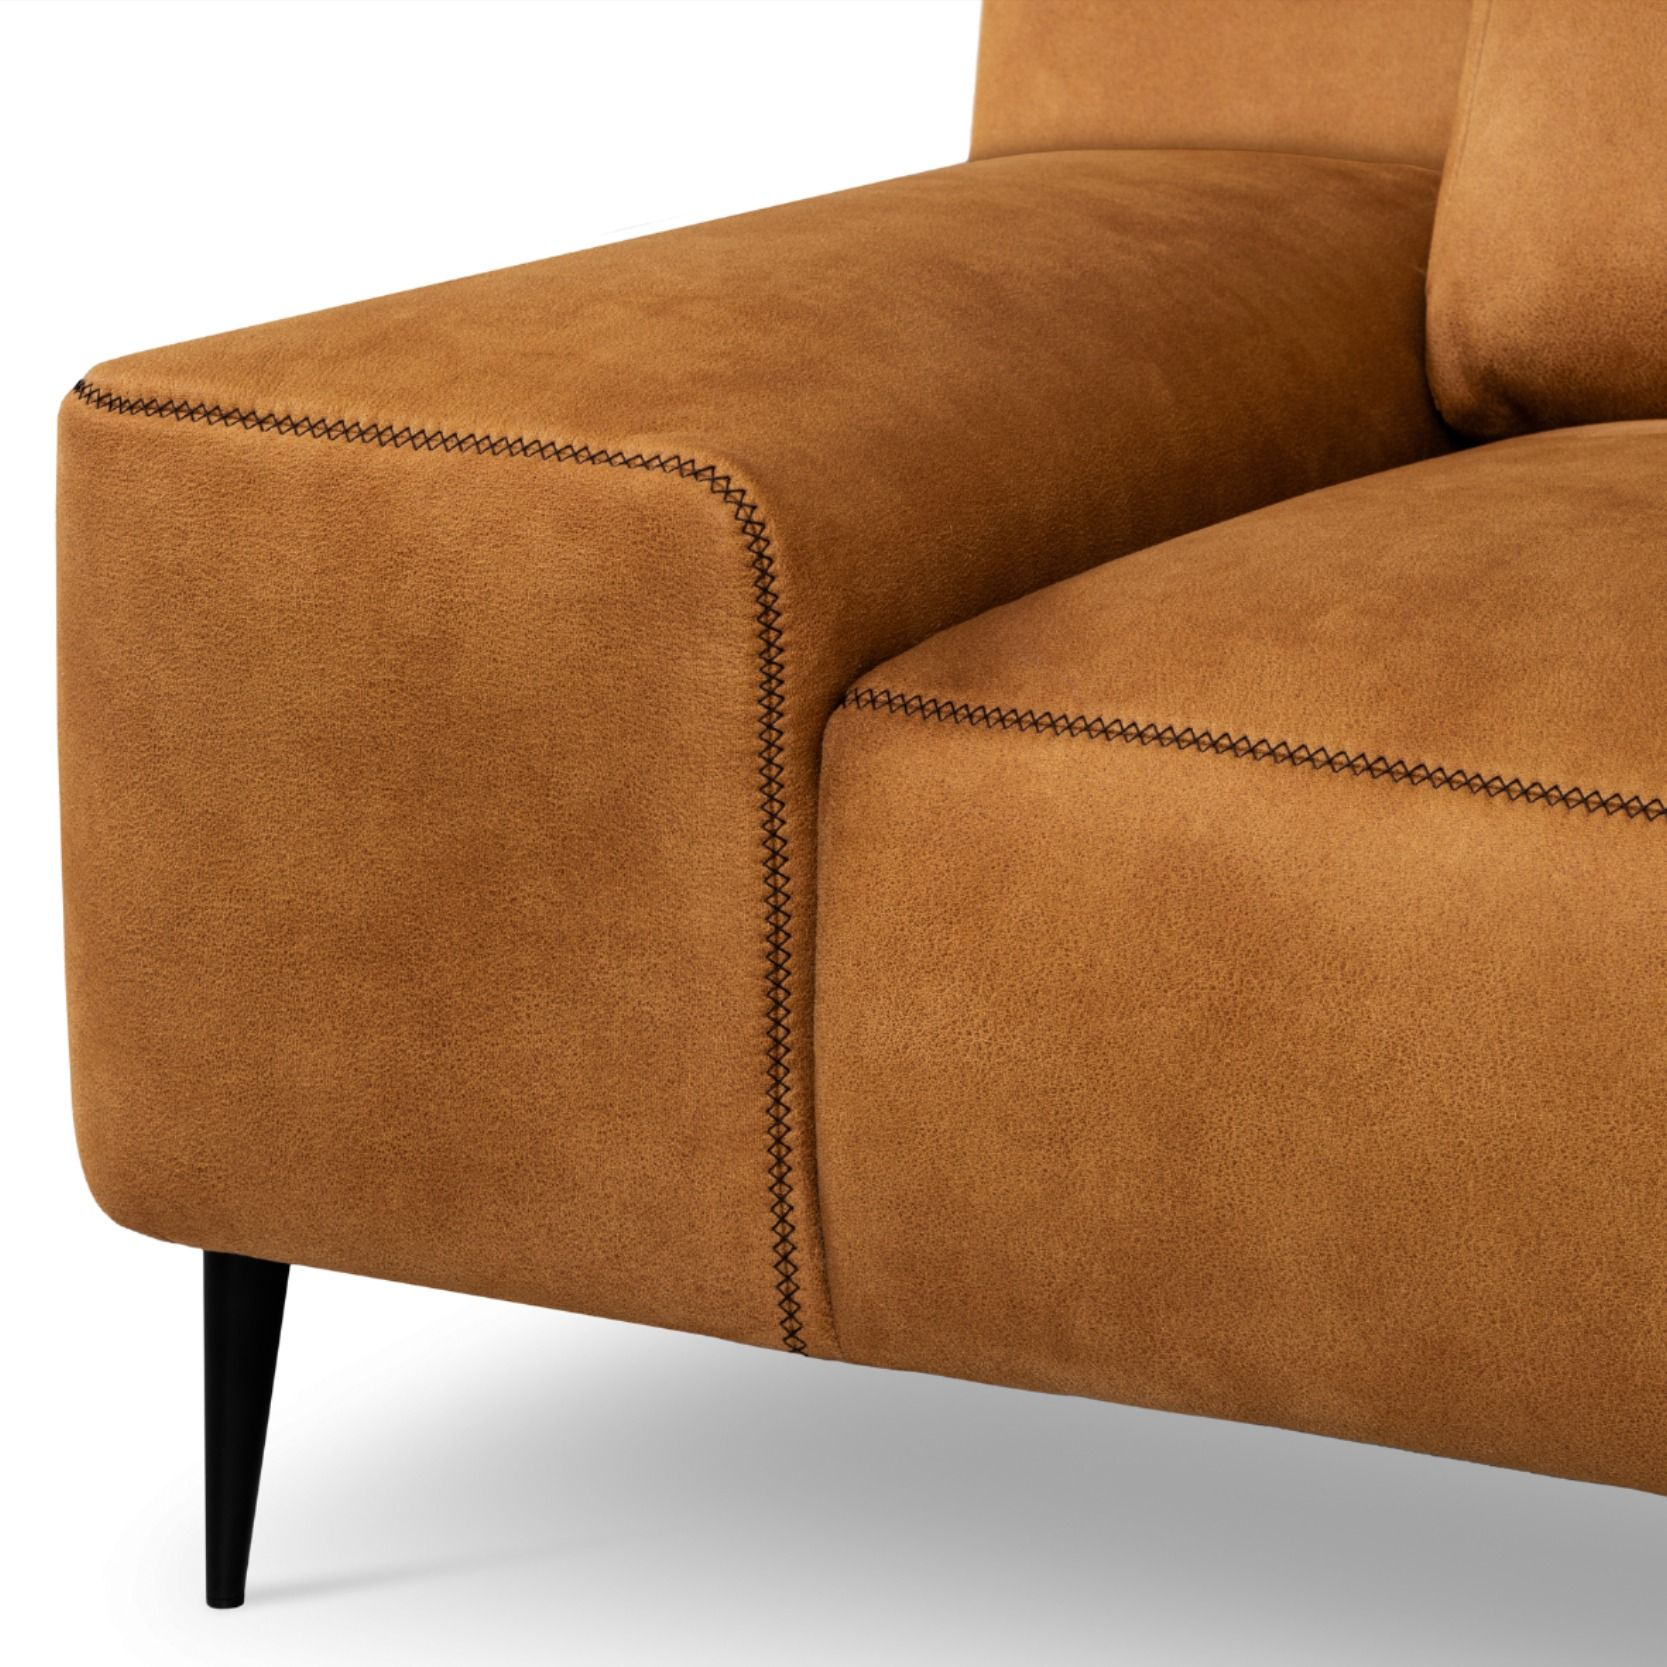 Sofa Veloursleder Forma By Designwerk Ag | High Quality Sofas, Sofa Design, Chic Living